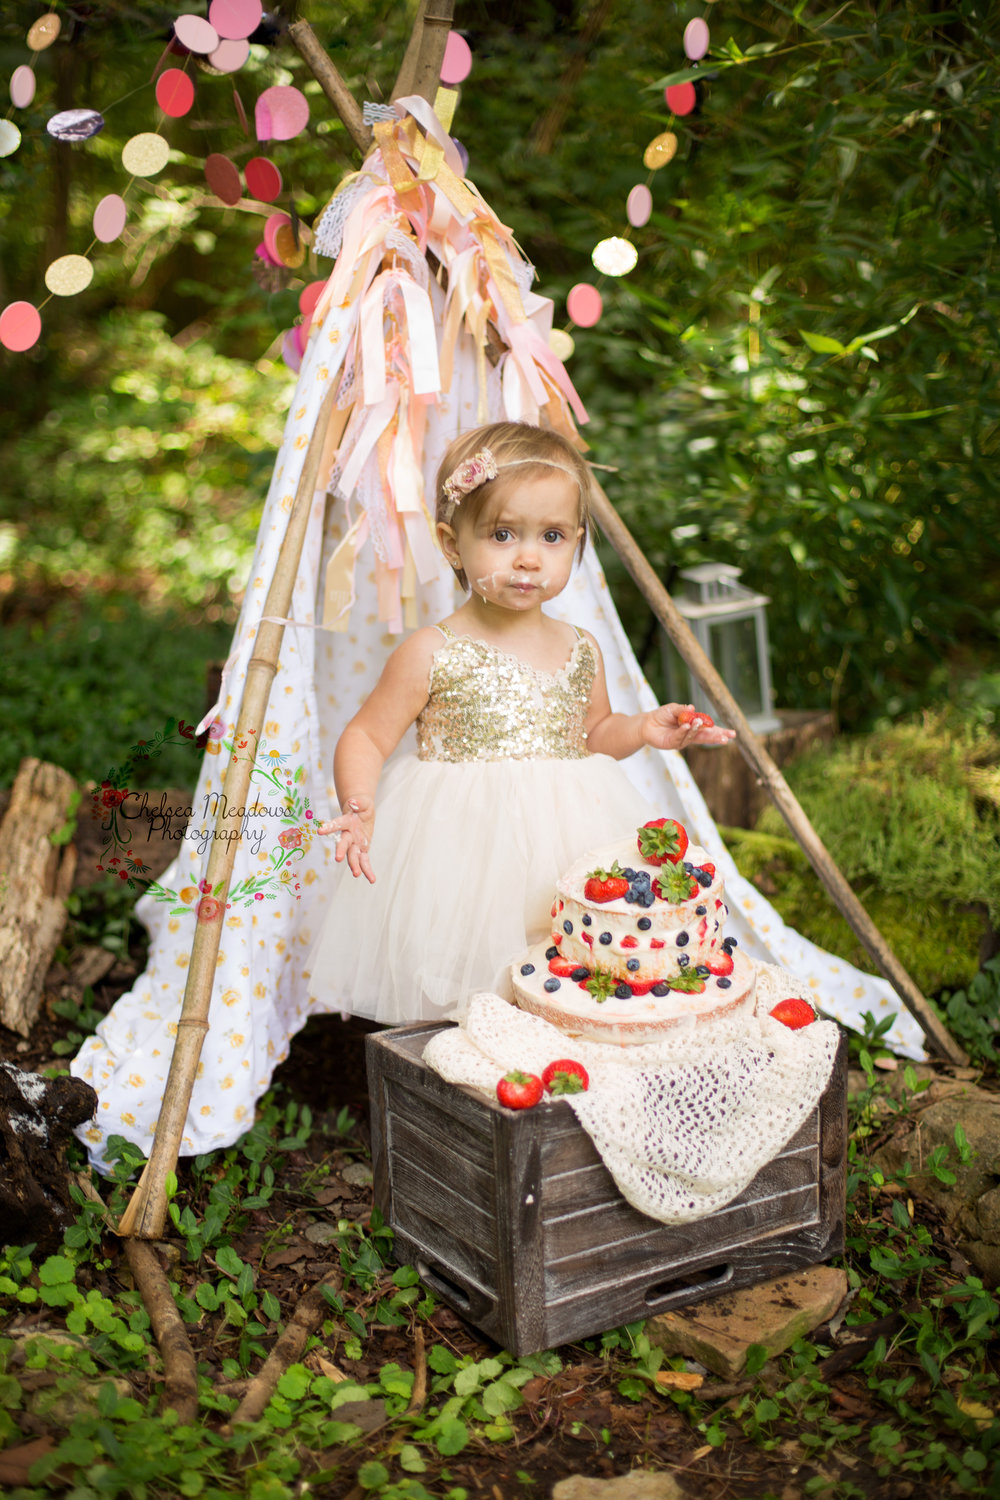 Paisley First Birthay Cake Smash - Nashville Family Photographer - Chelsea Meadows Photography (41).jpg